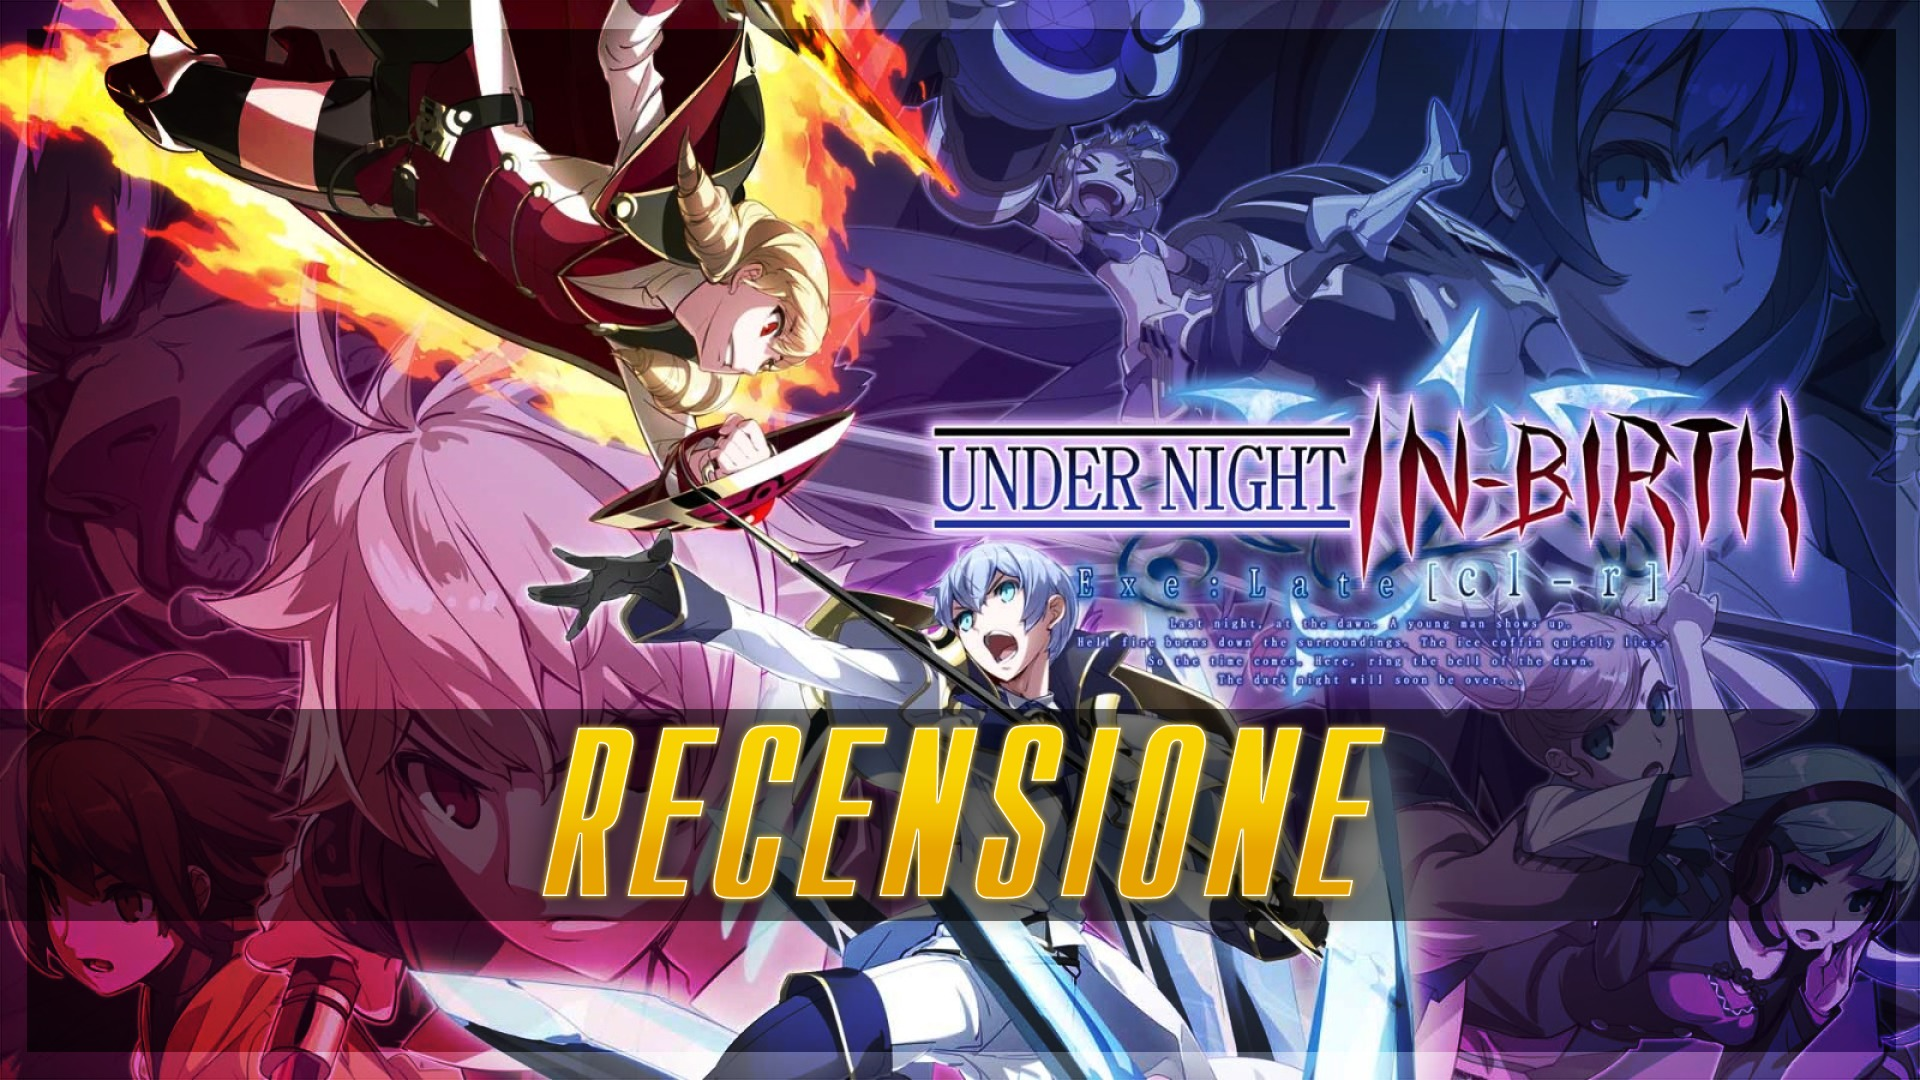 Under Night In Birth Exe Late Cl R Review Let S Talk About